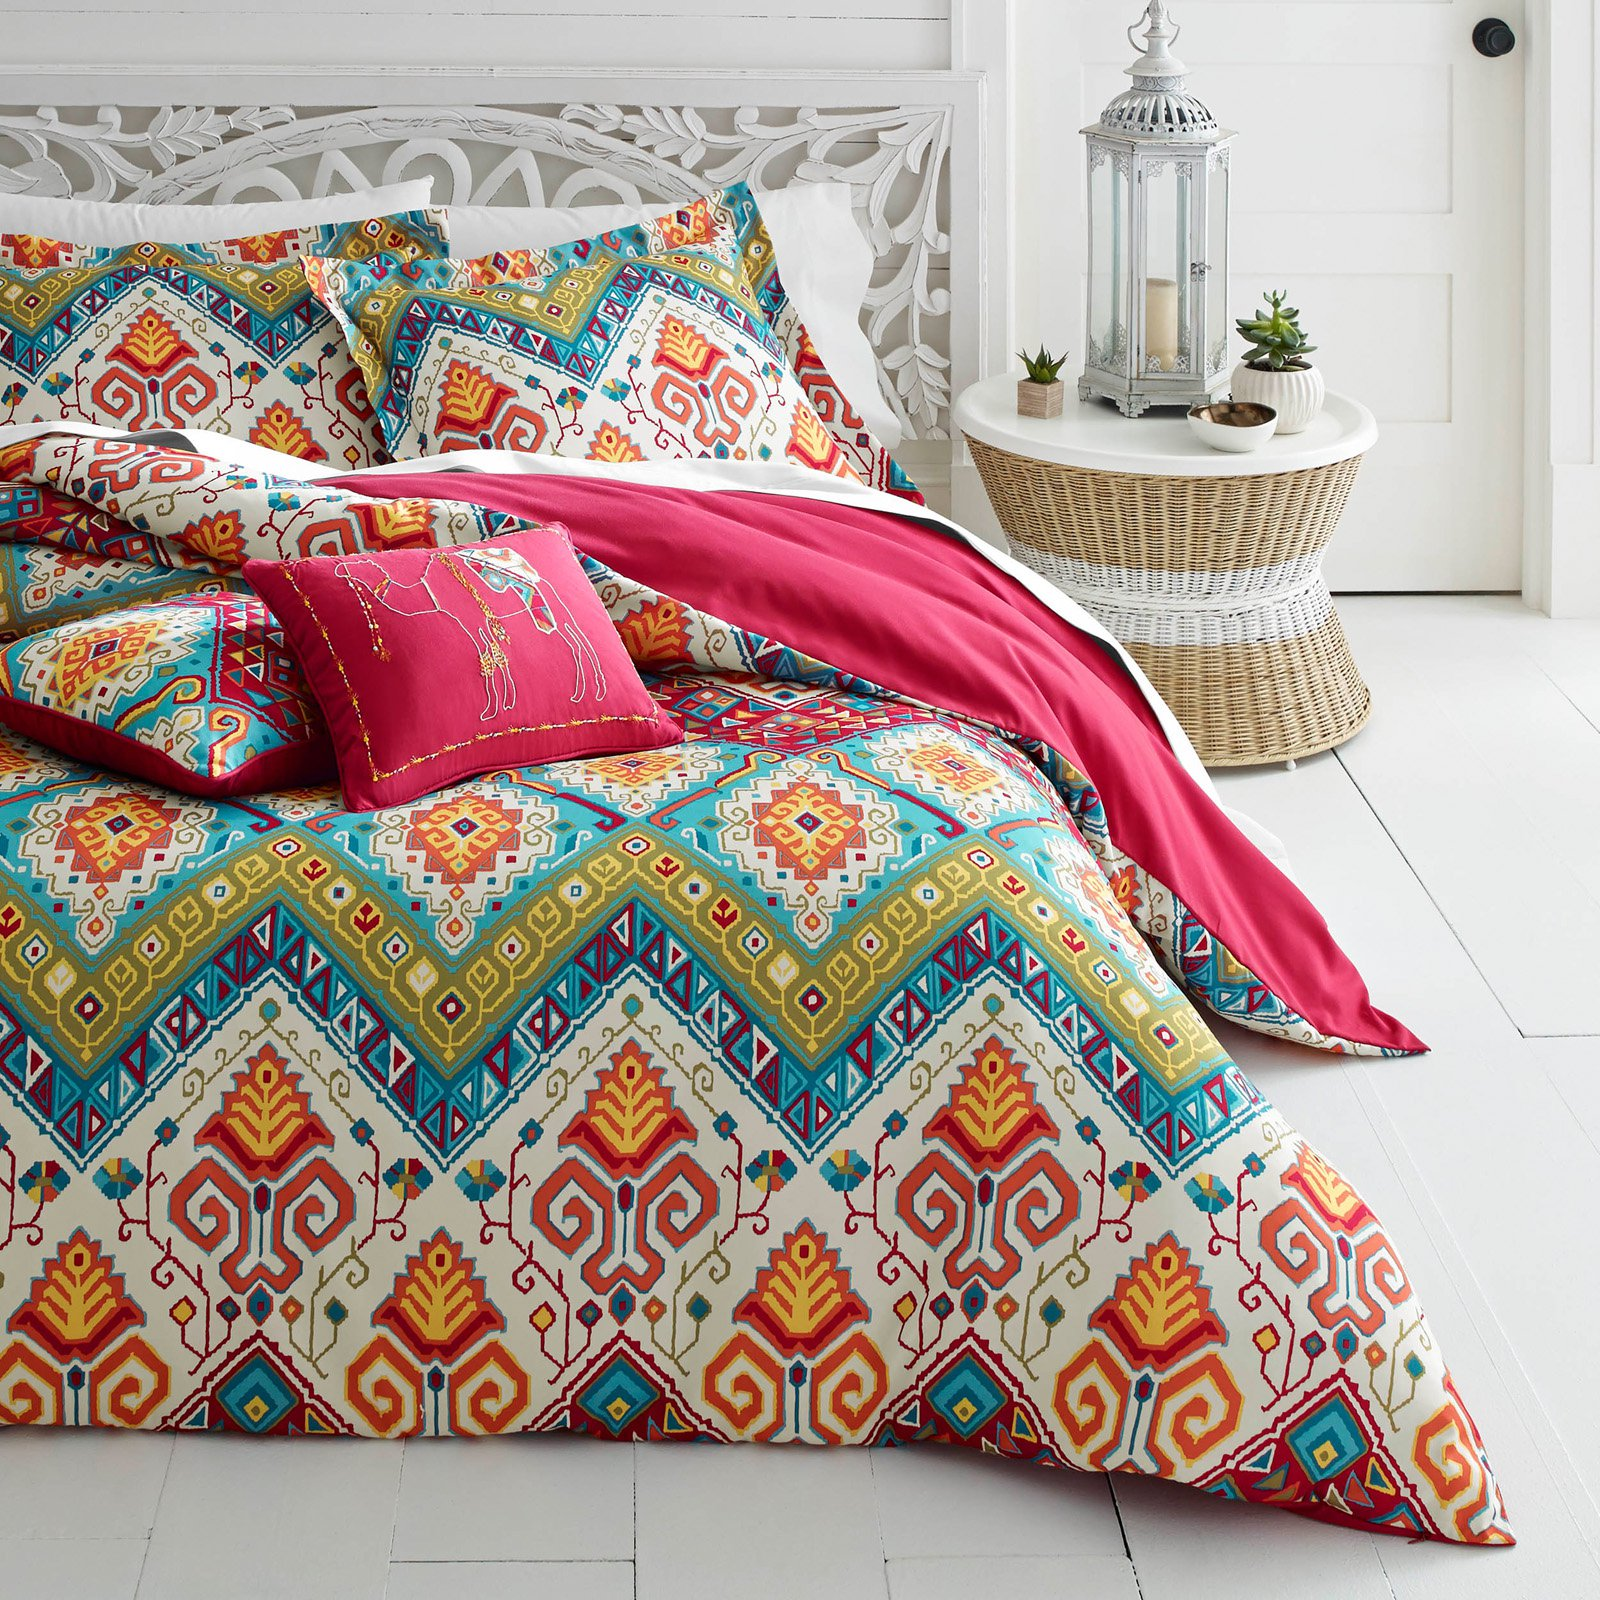 Azalea Skye Moroccan Nights 2 Piece Comforter Set, Twin